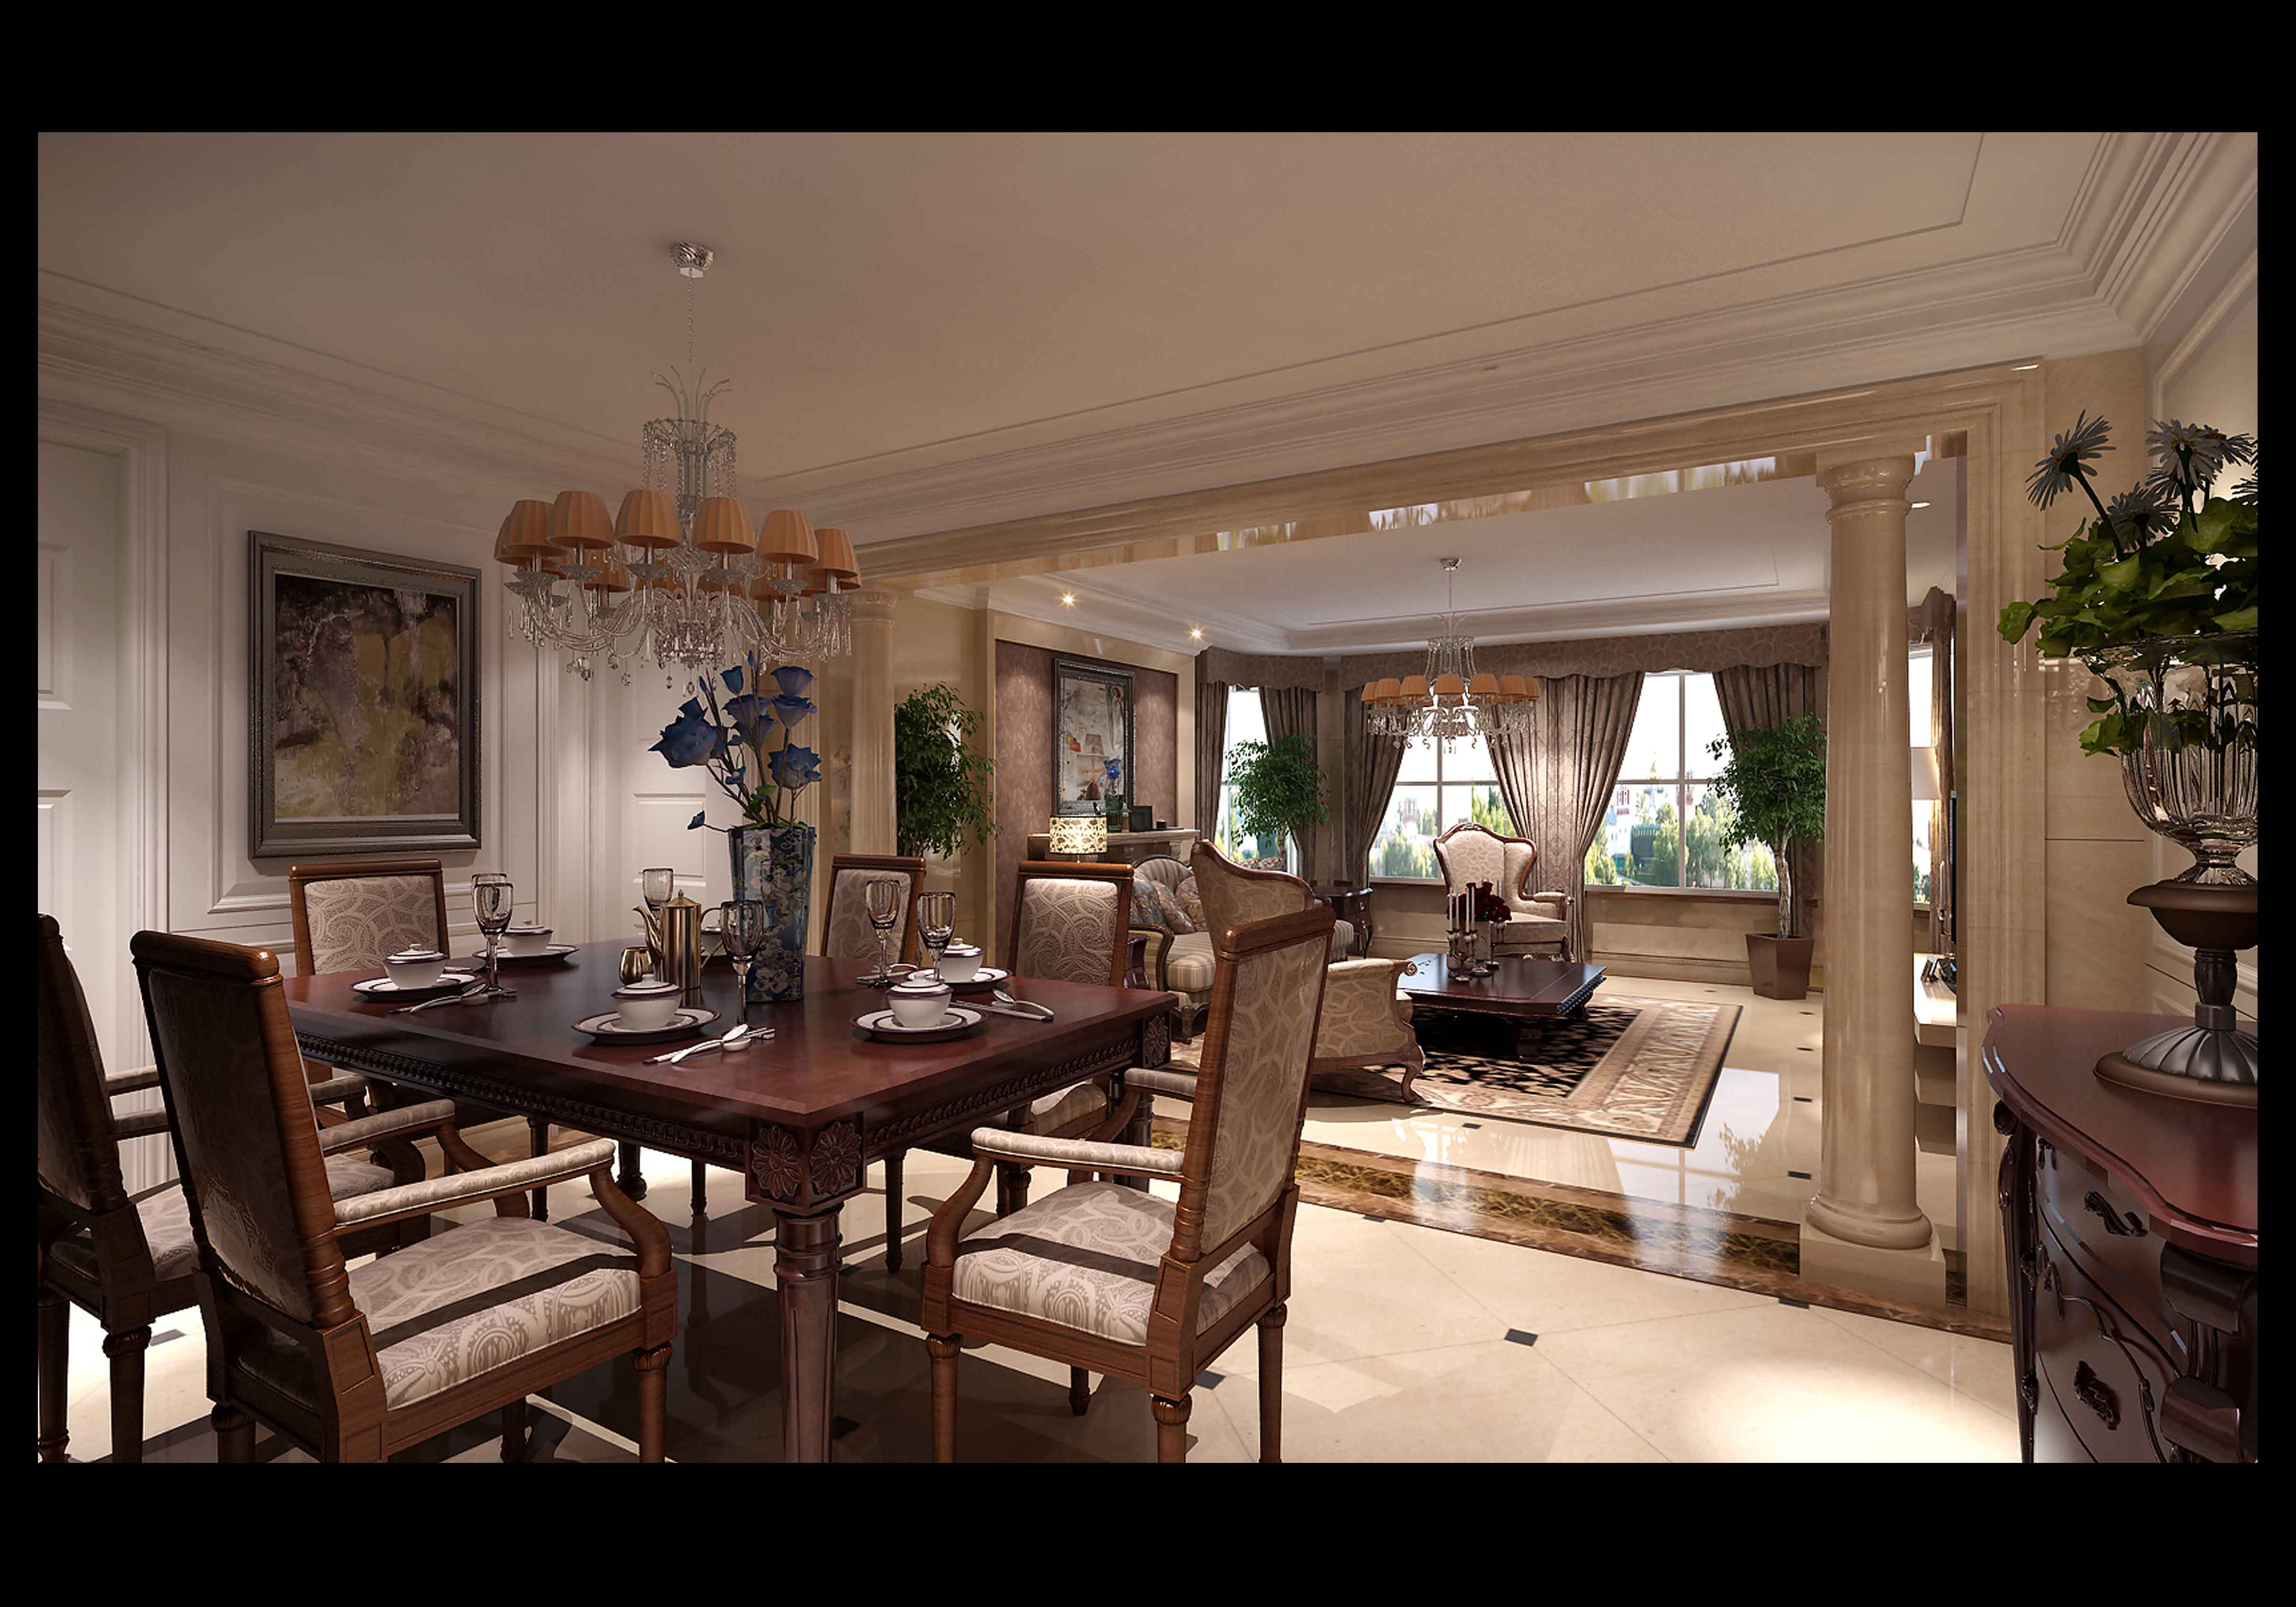 Luxurious Living Room With Dining Table 3d Model Max 1